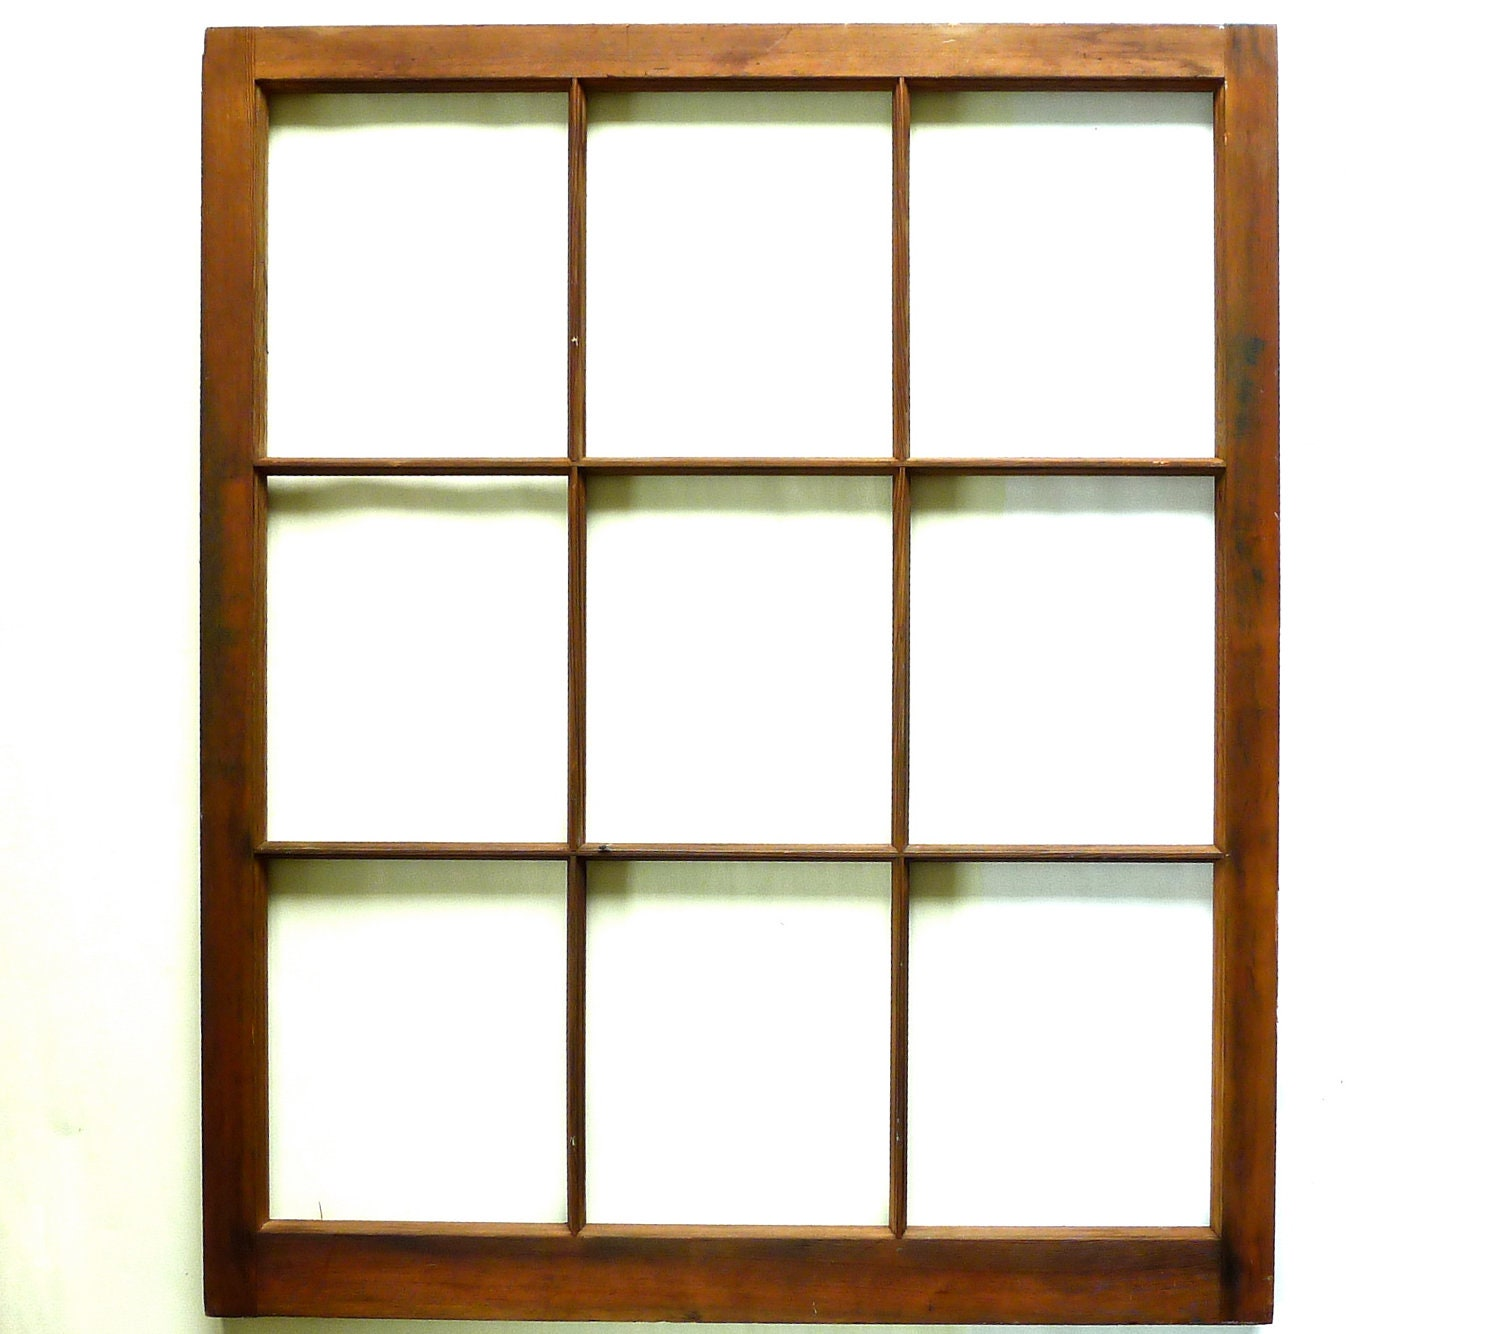 Reserved for Rahe Vintage Old Growth Fir Wood Window Pane 34